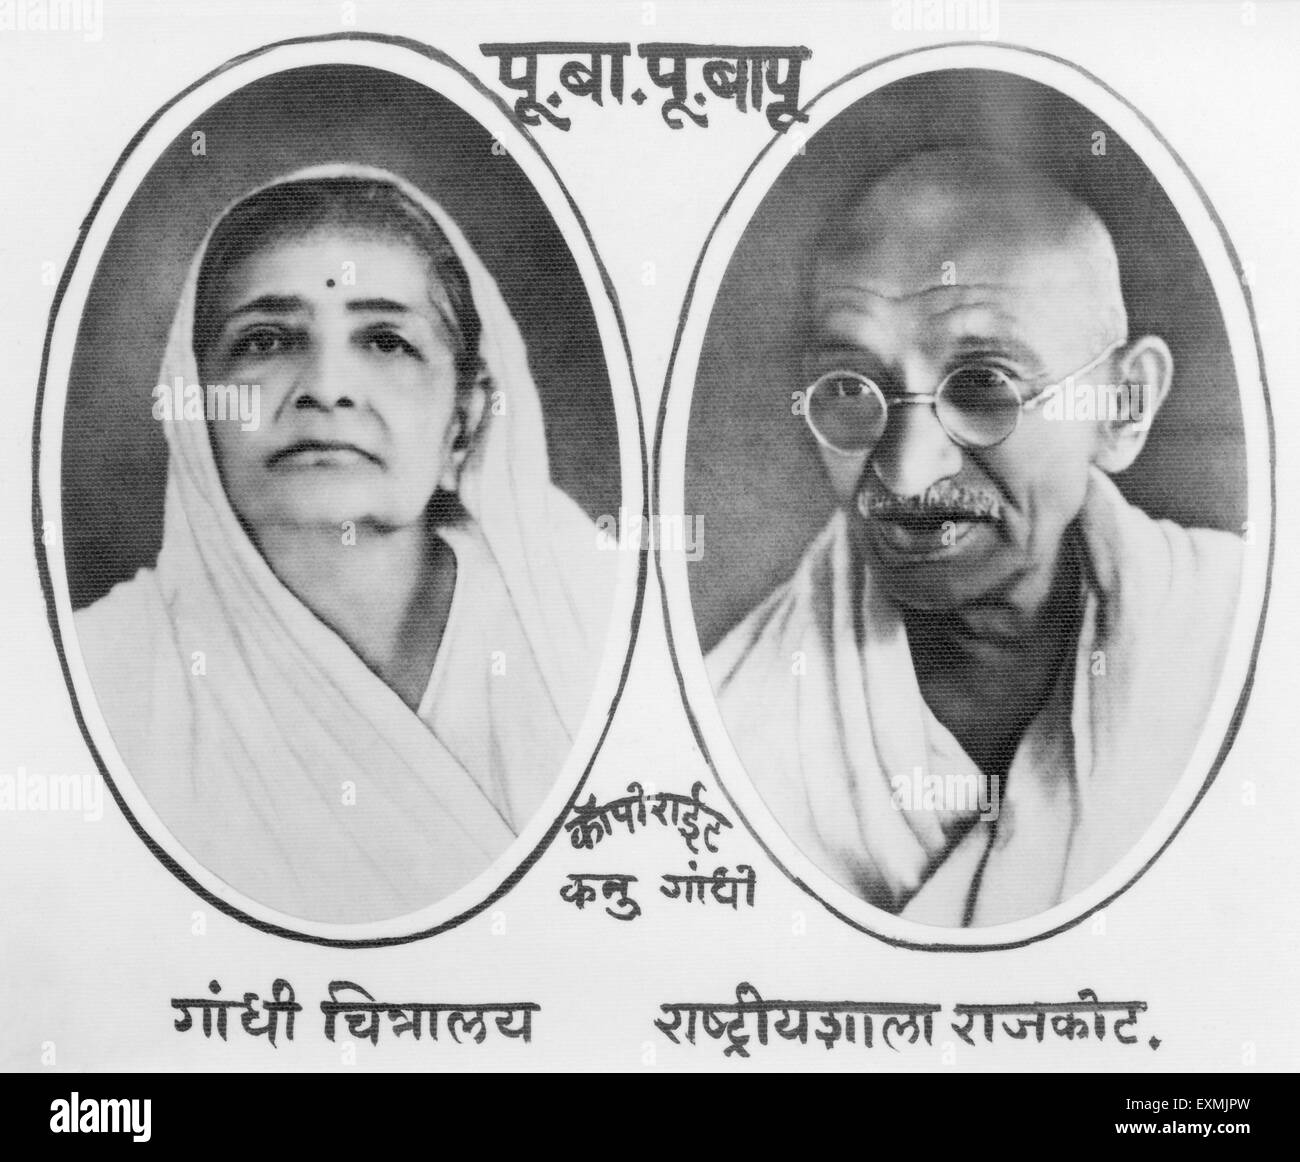 Portraits of Kasturba Gandhi and Mahatma Gandhi Ba and Bapu with copyright line and address of Kanu Gandhi - Stock Image